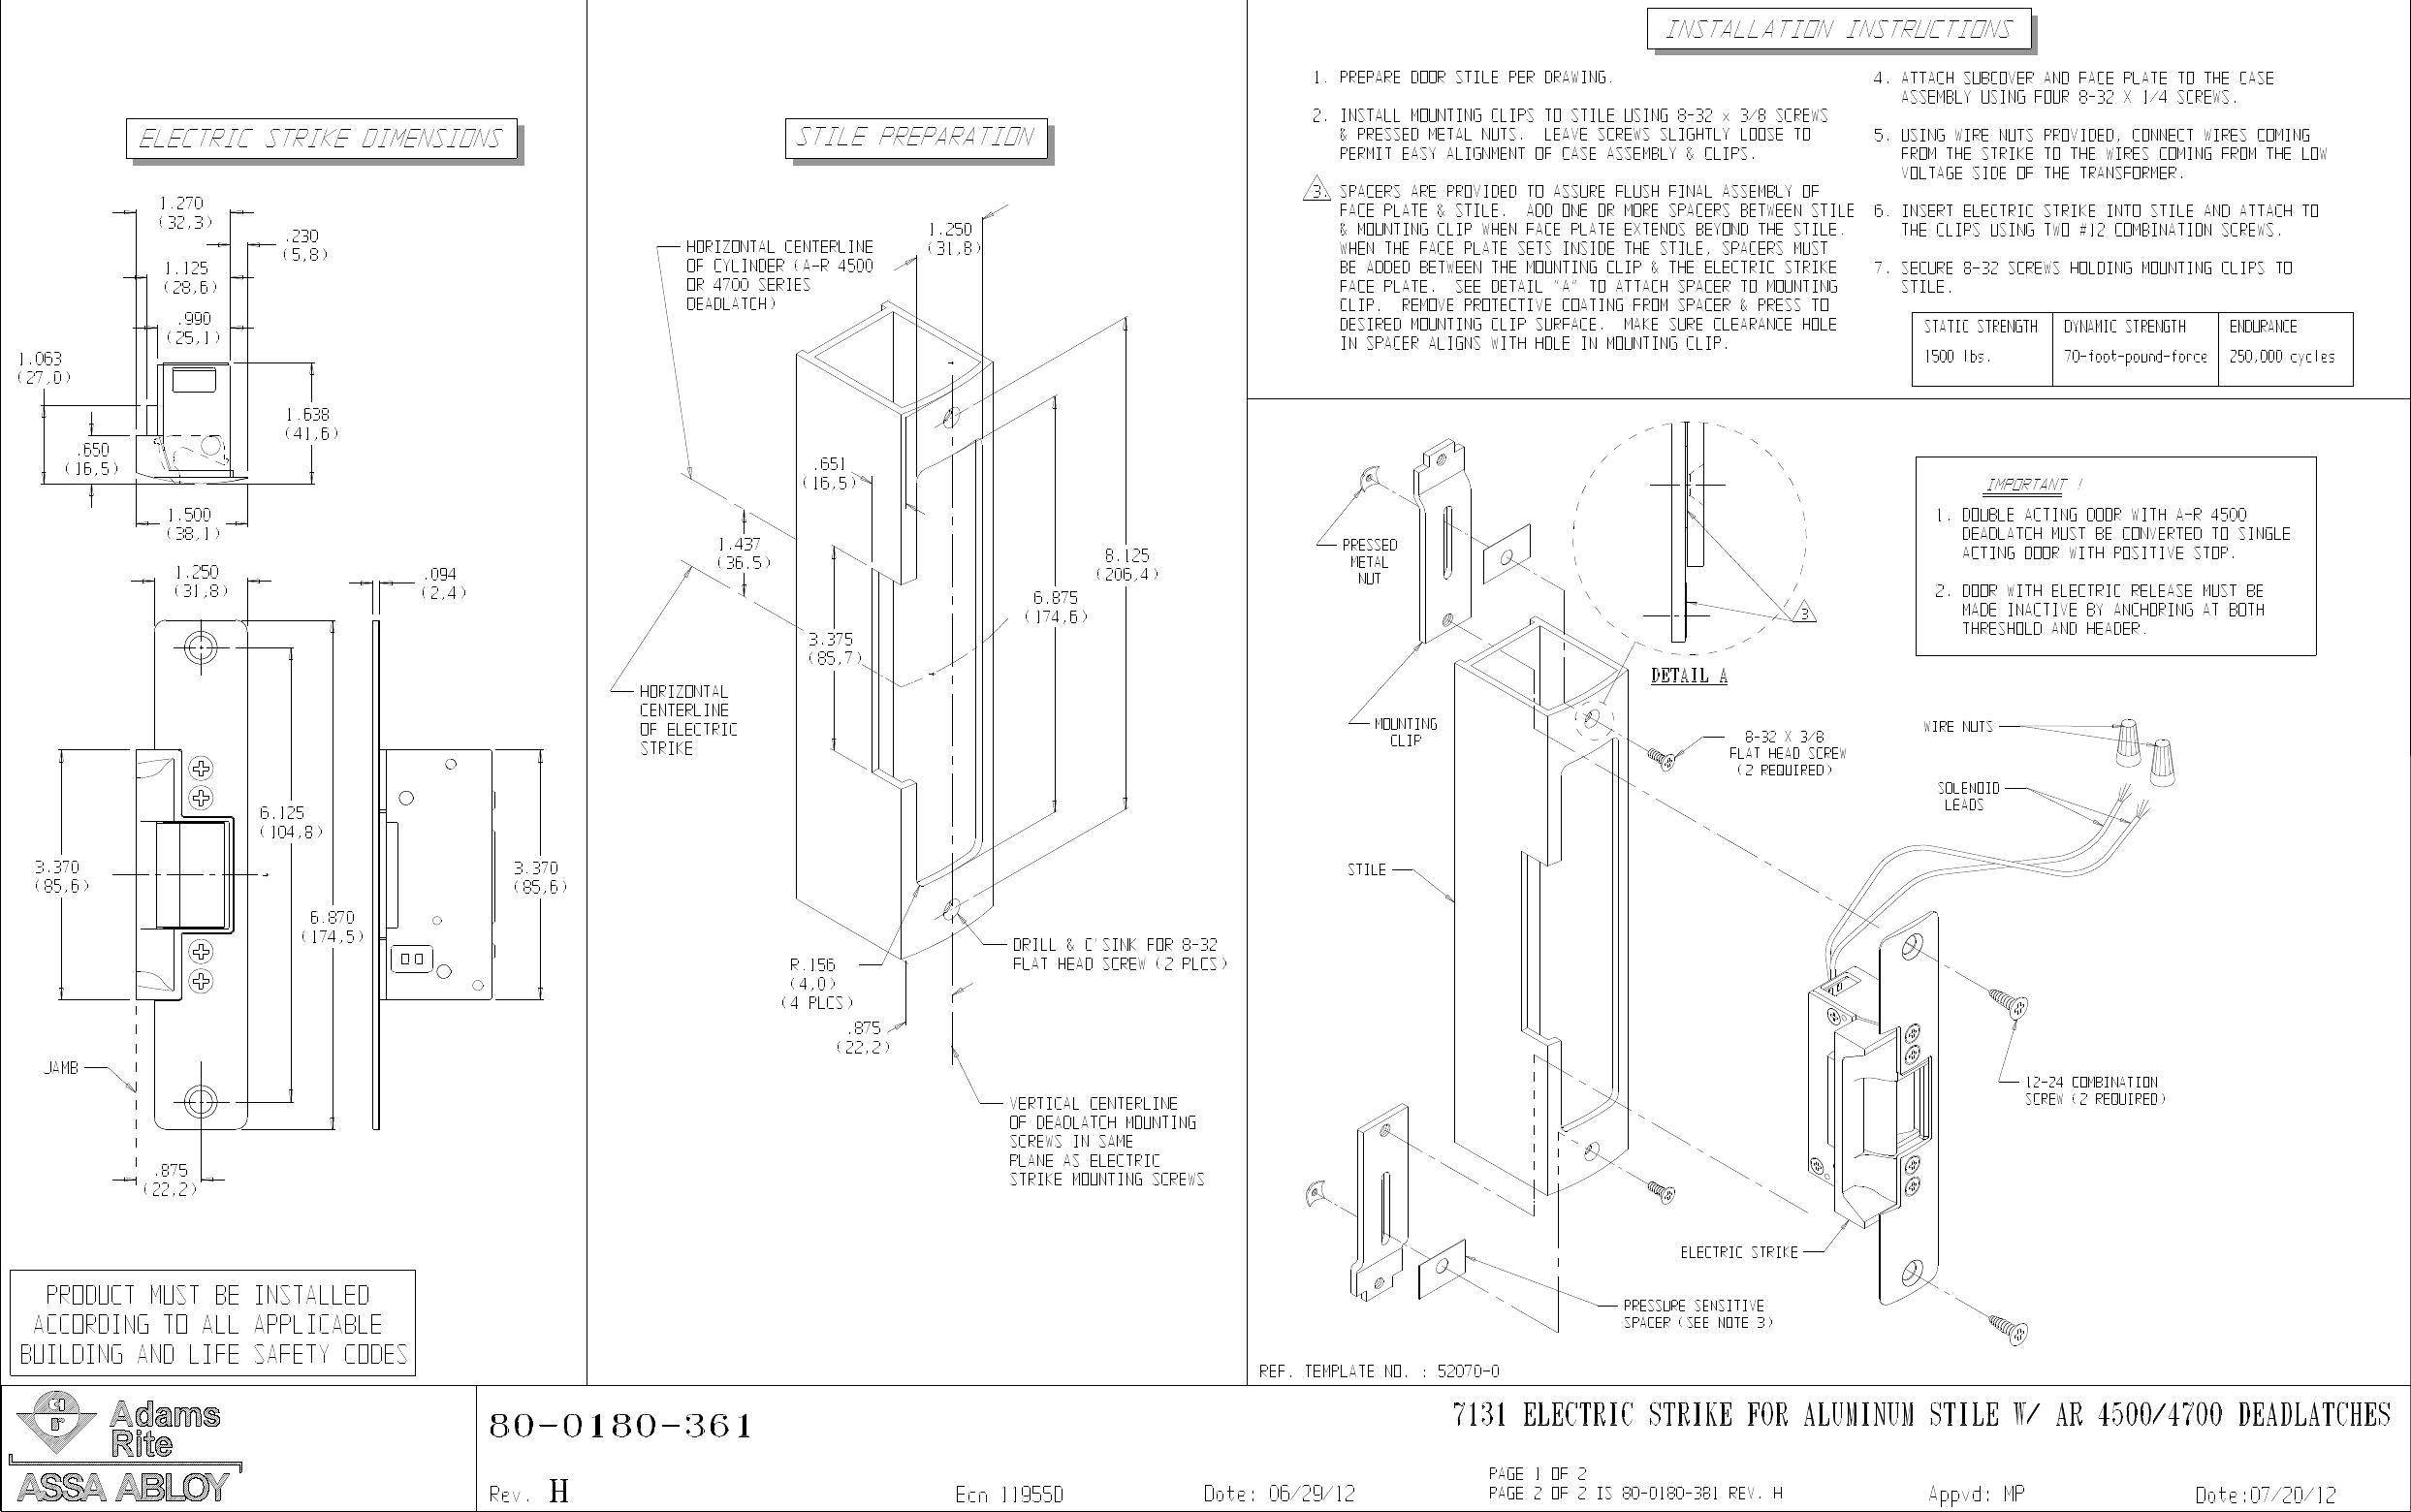 adams rite electric strike wiring diagram collection-adams rite 7131 electric  strike for aluminum stile